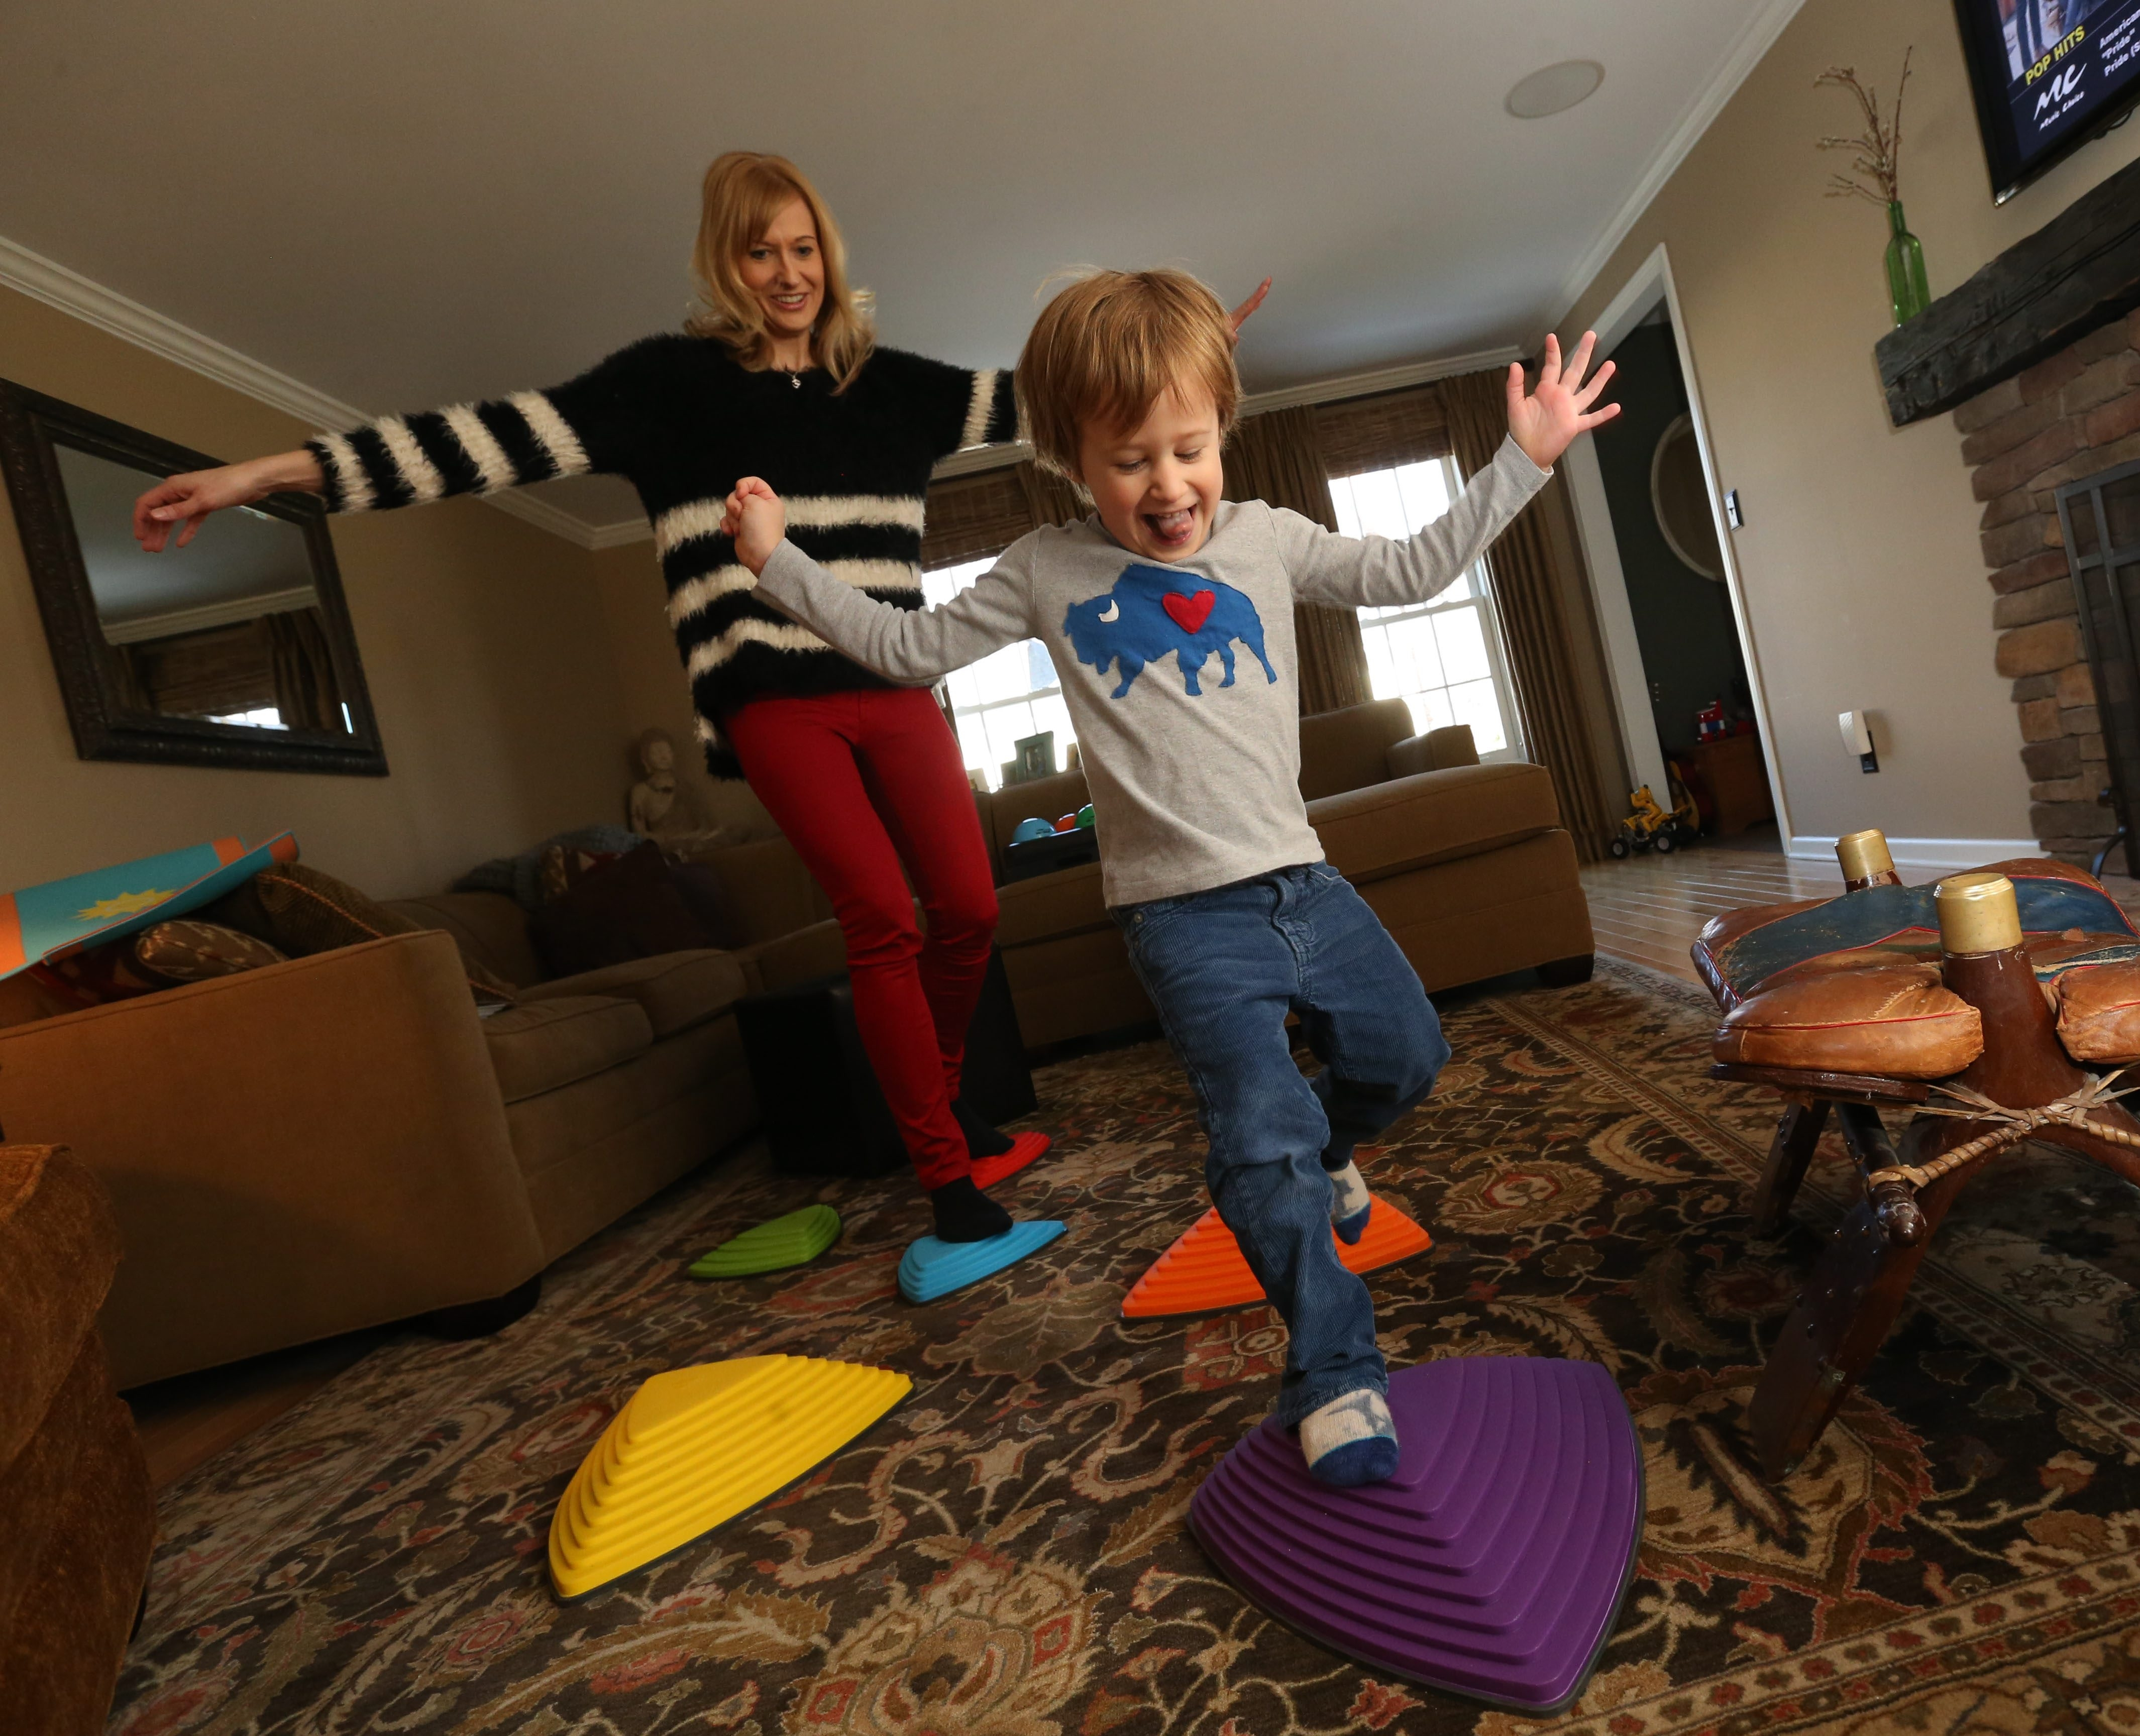 Christina Bleckinger likes to take her son, Henry, 4, for walks in Glen Park. She also enjoys putting colorful stepping pieces on the living room floor their Williamsville home so the two can pretend that they're jumping from rock to rock in a pond or stream.